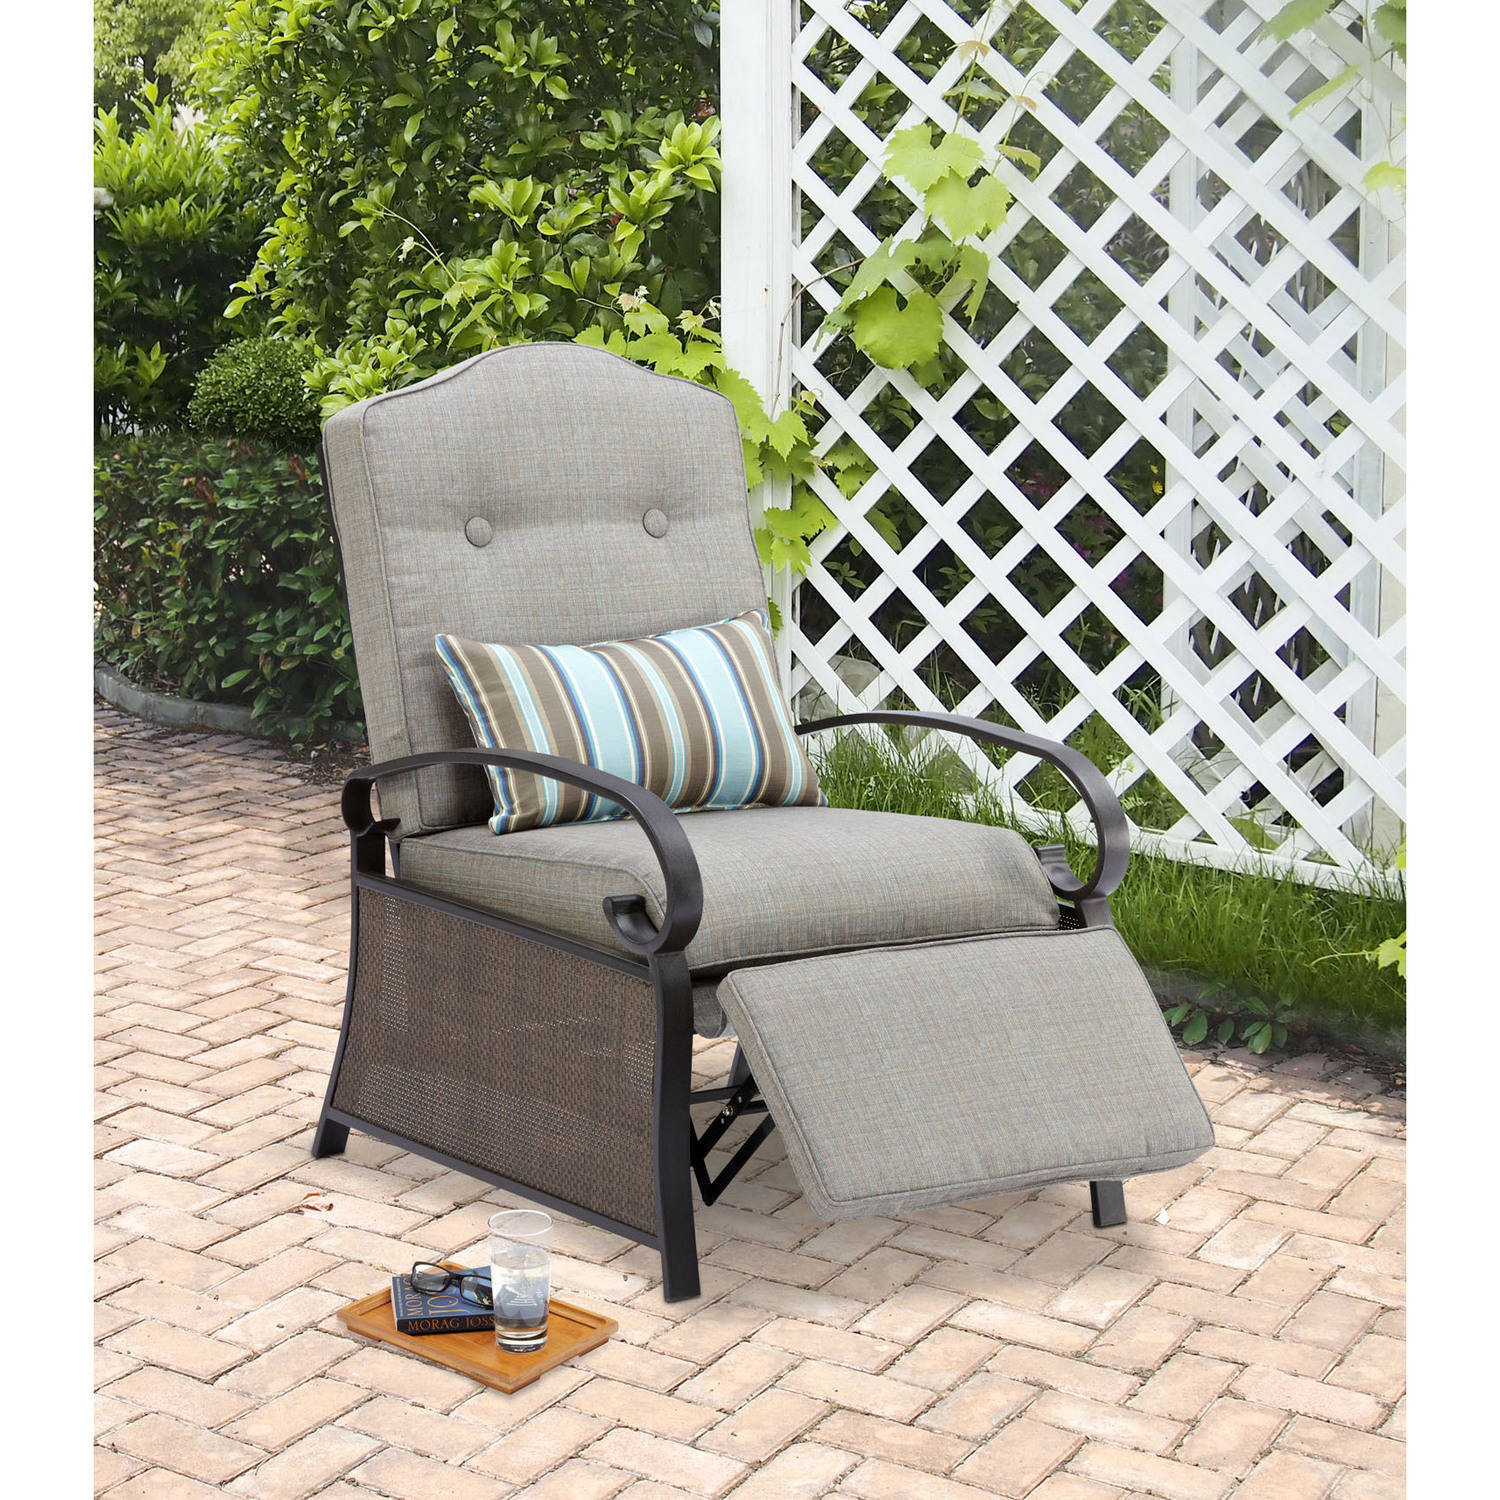 Best ideas about Walmart Patio Furniture . Save or Pin Patio Furniture Walmart Outdoor Sets Clearance Cheap Now.